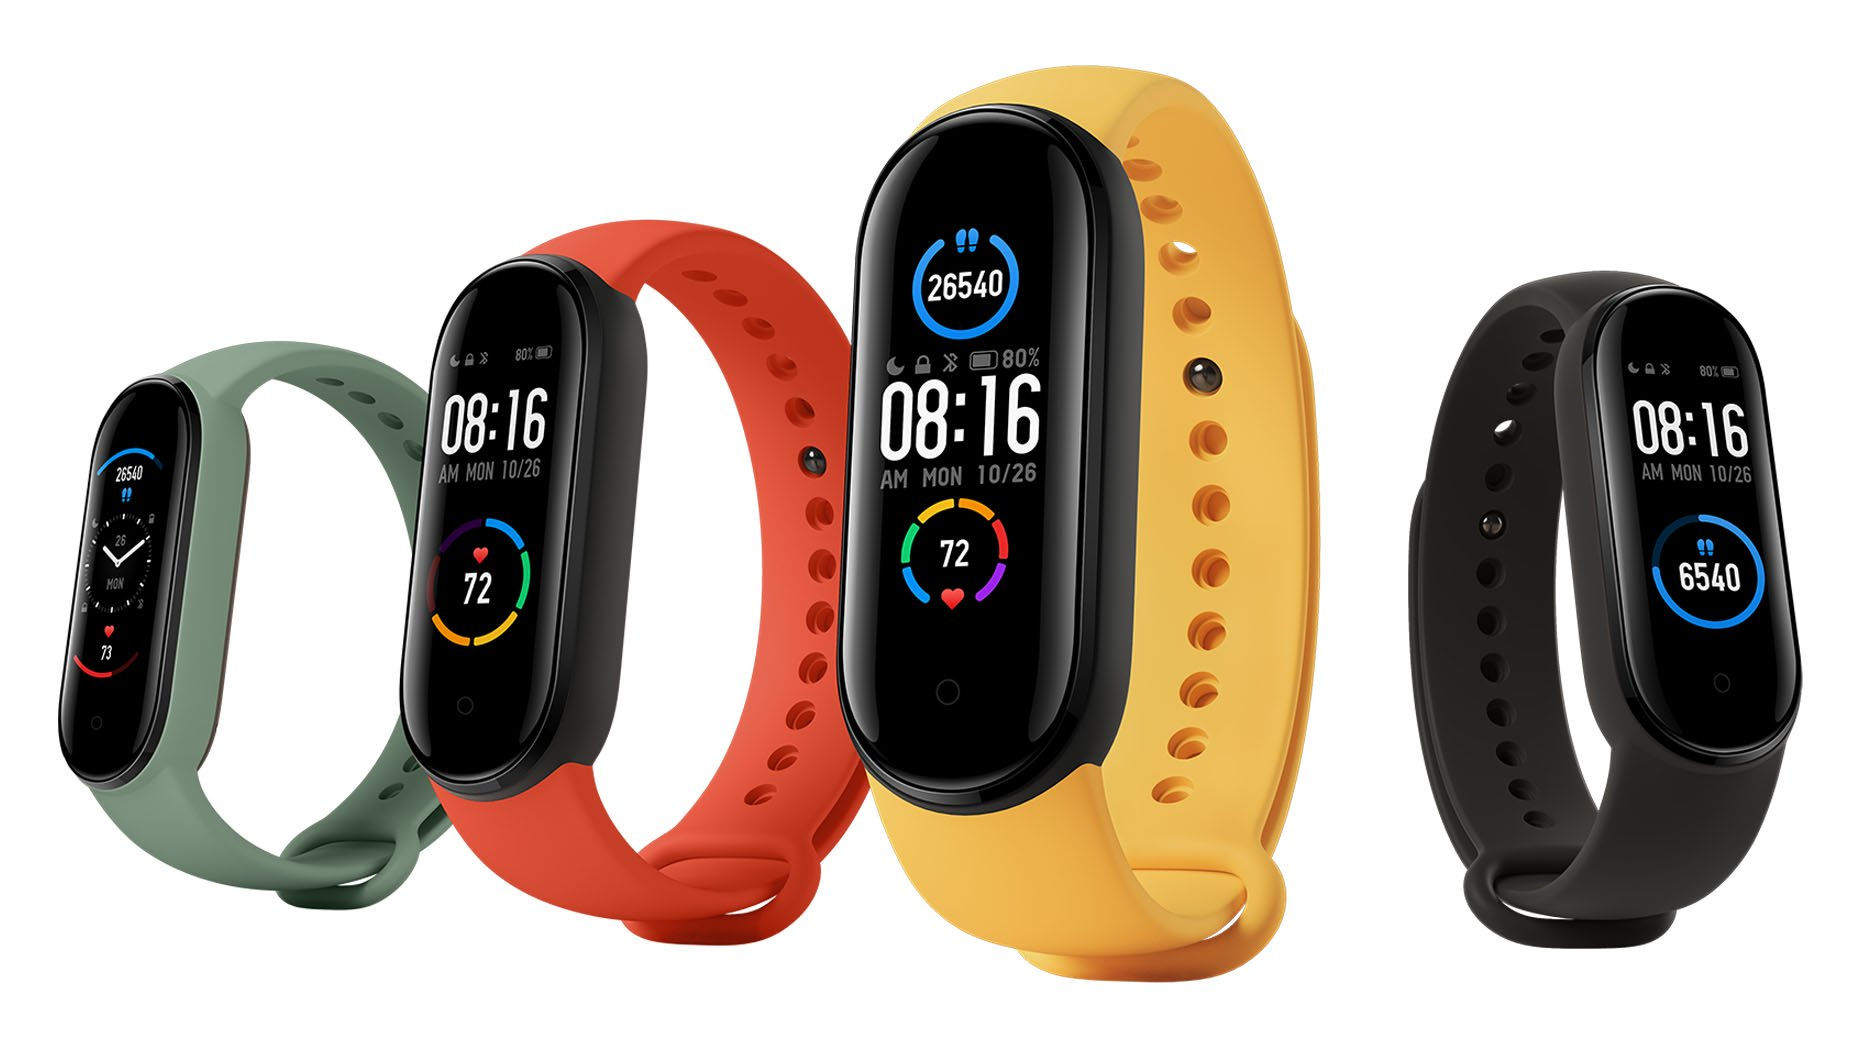 XIAOMI MI BAND 5 RECEIVES 24-HOUR SLEEP MONITORING AND NEW LANGUAGES - News Portal